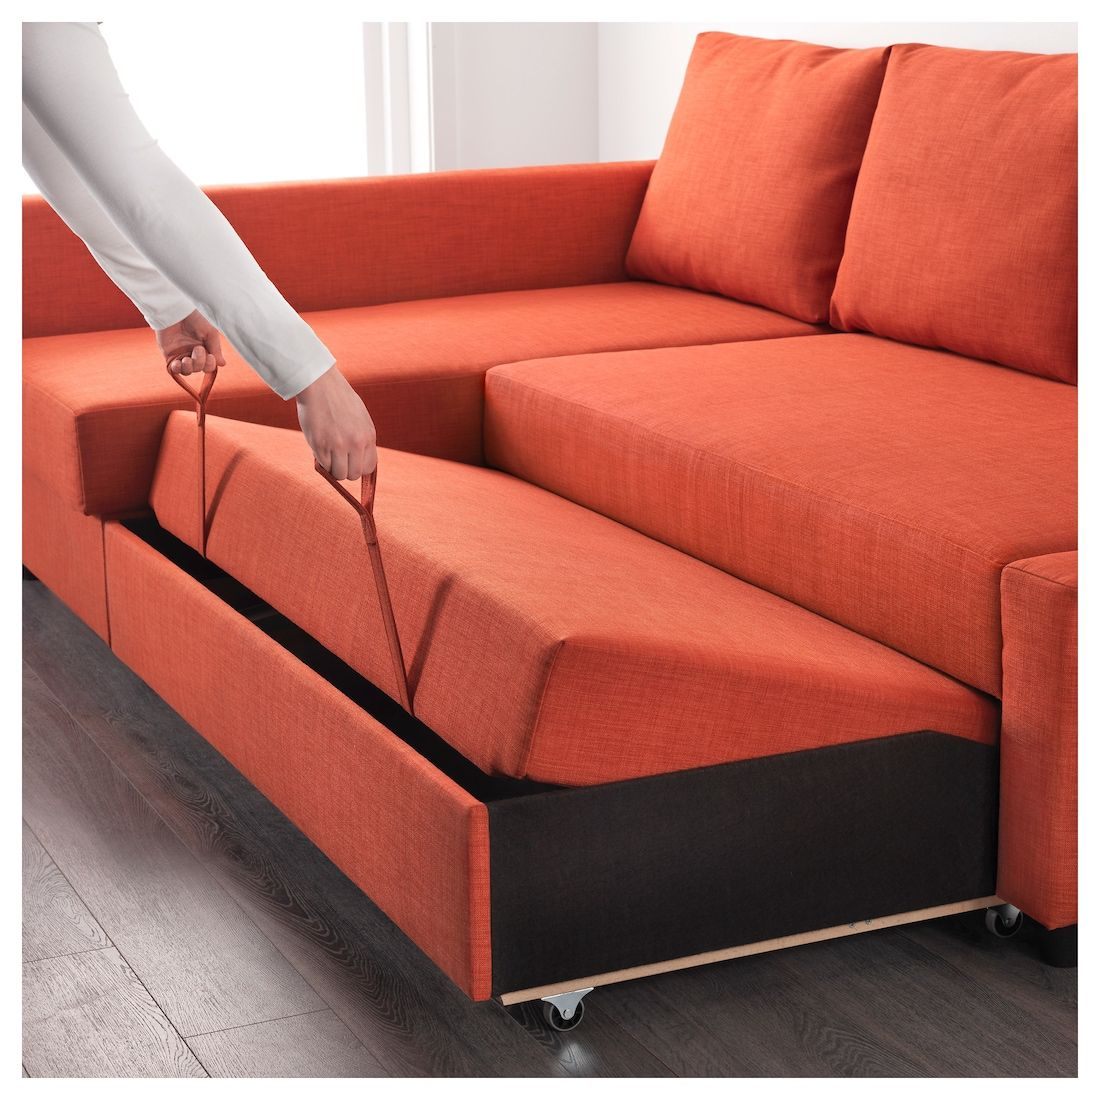 Us Furniture And Home Furnishings Corner Sofa Bed Sofa Bed With Chaise Corner Sofa Bed With Storage